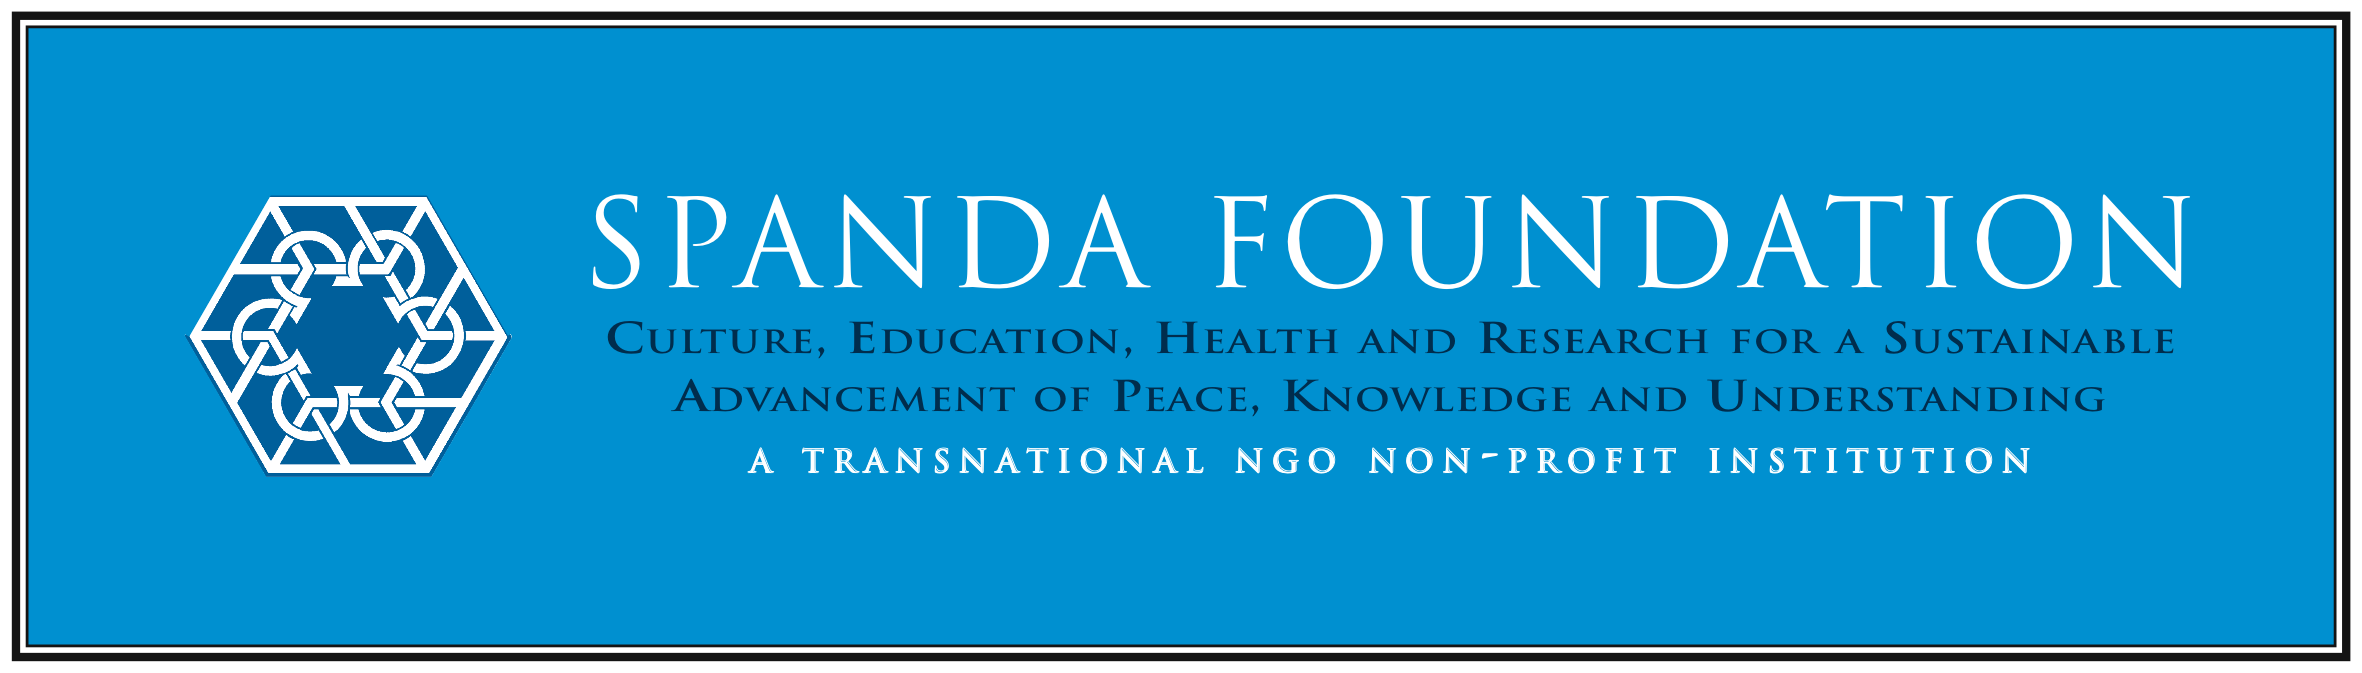 Spanda Foundation